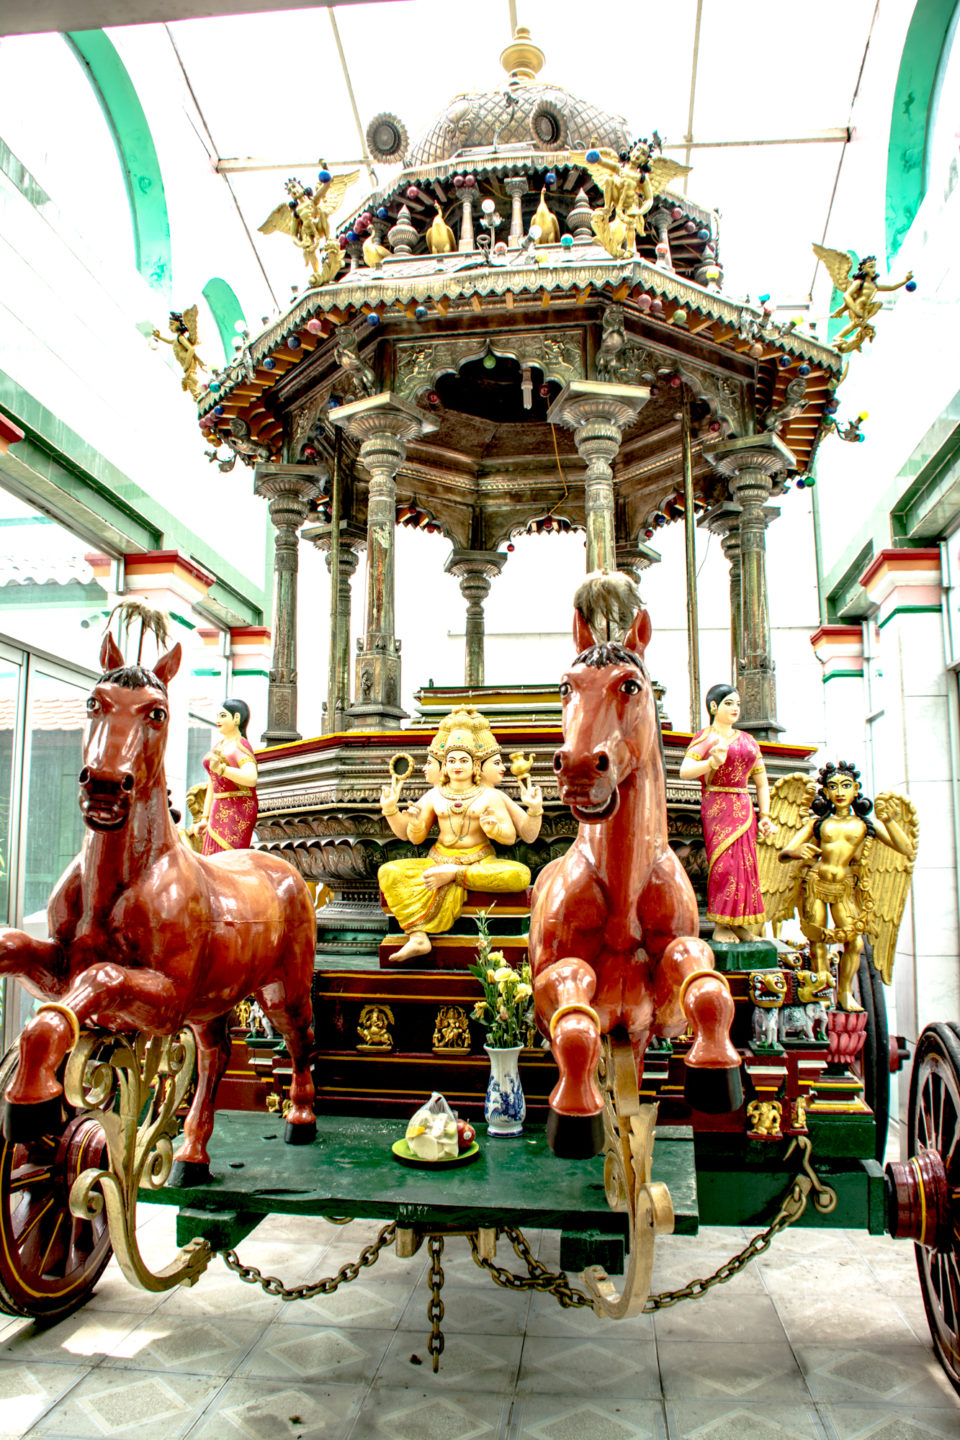 Chariot at Thendayuthapani or Thandayuthapani Hindu temple, Ho Chi Minh City